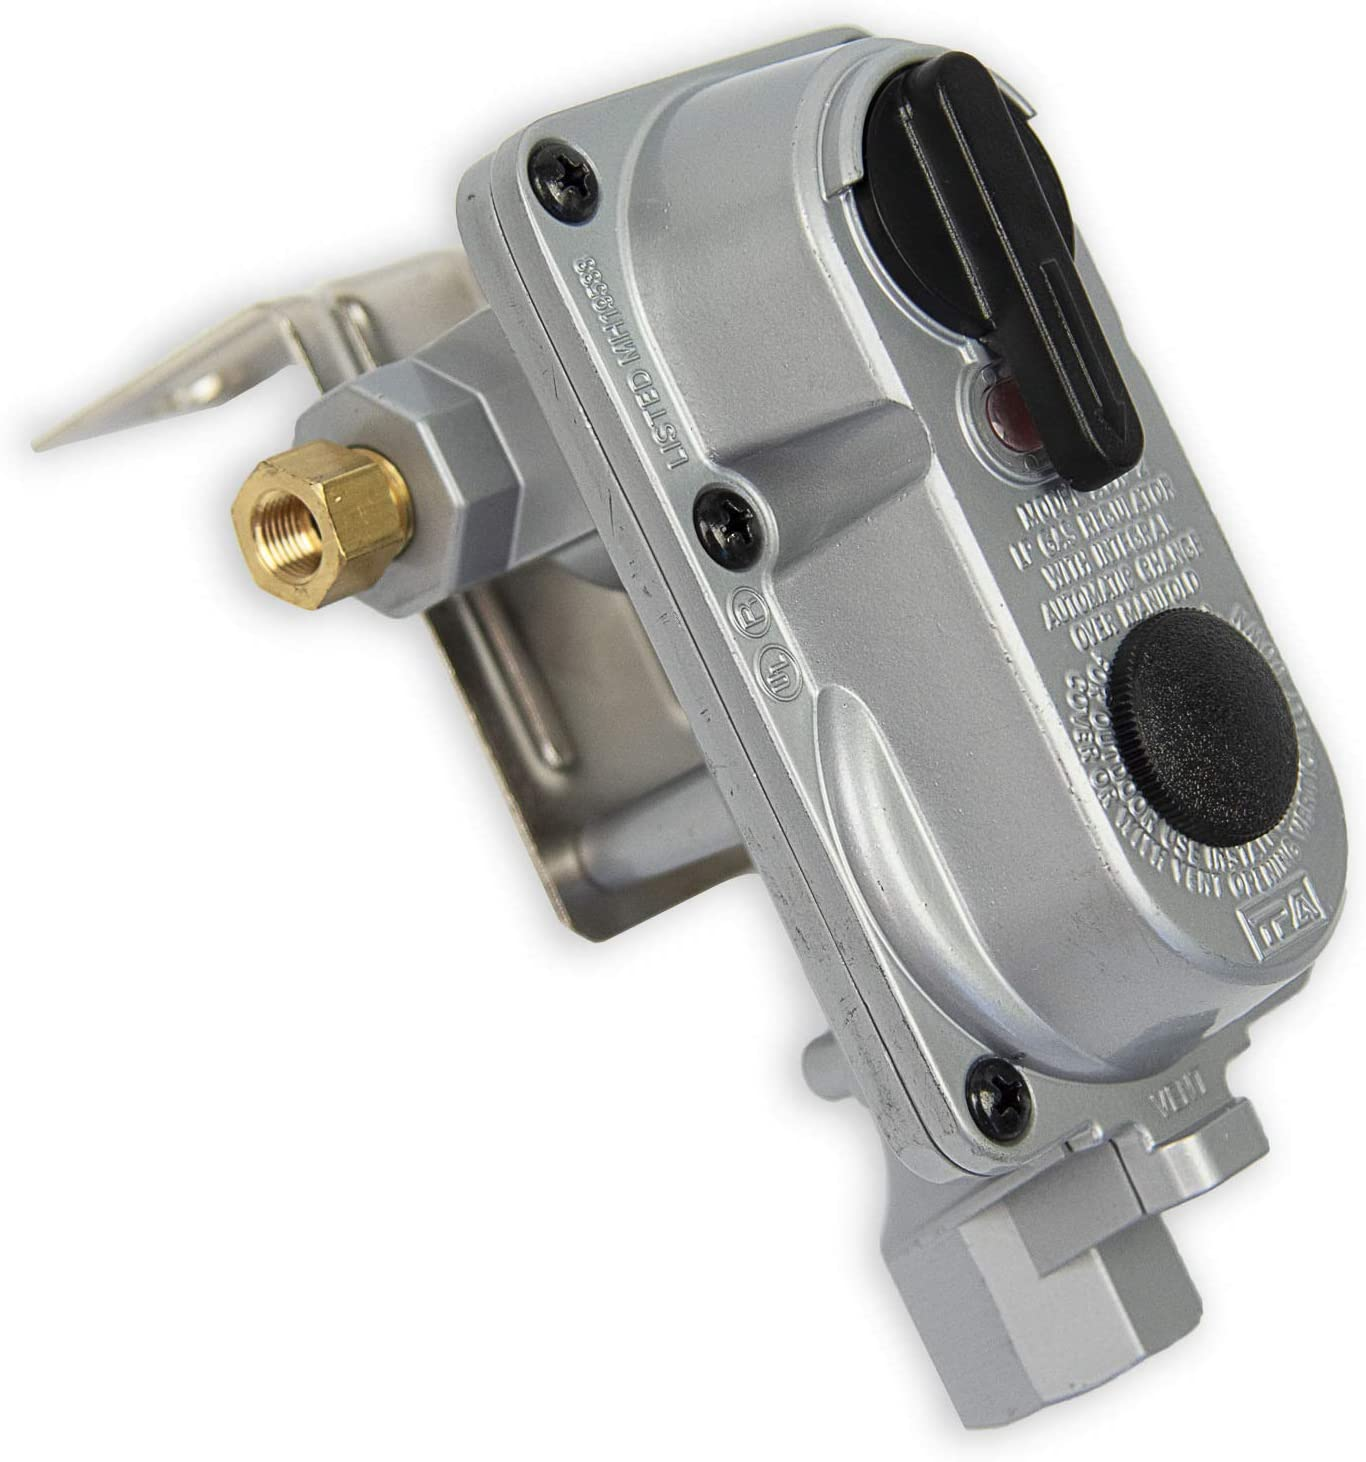 Flame King Without Pigtails 2-Stage Auto Changeover LP Propane Gas Regulator For RVs Trailers ACR6 Vans